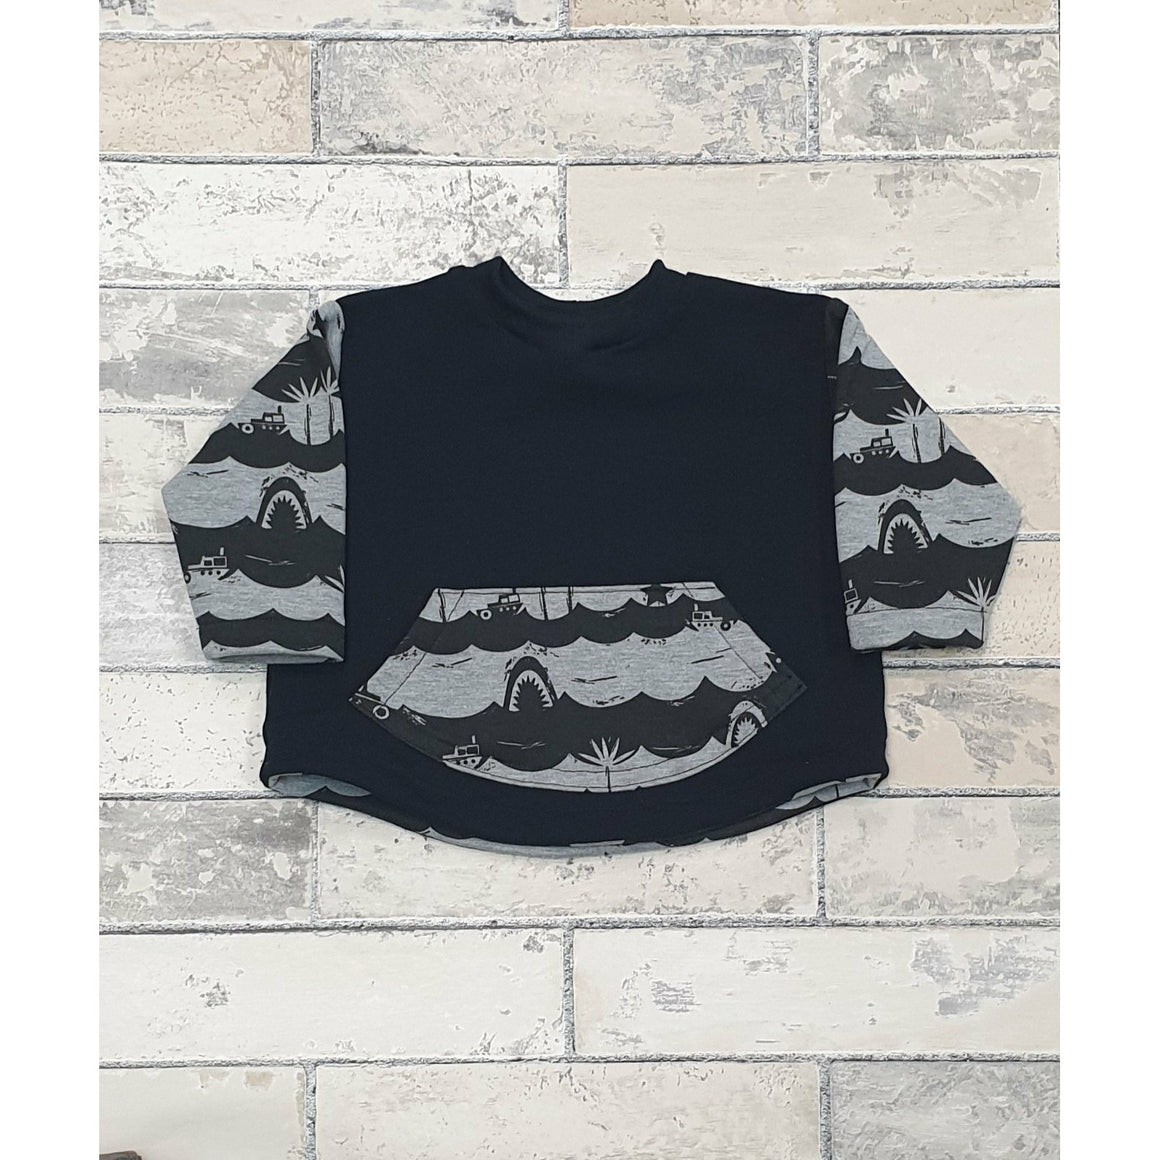 Cody Curved Crew Top - Grey w/ Black Waves